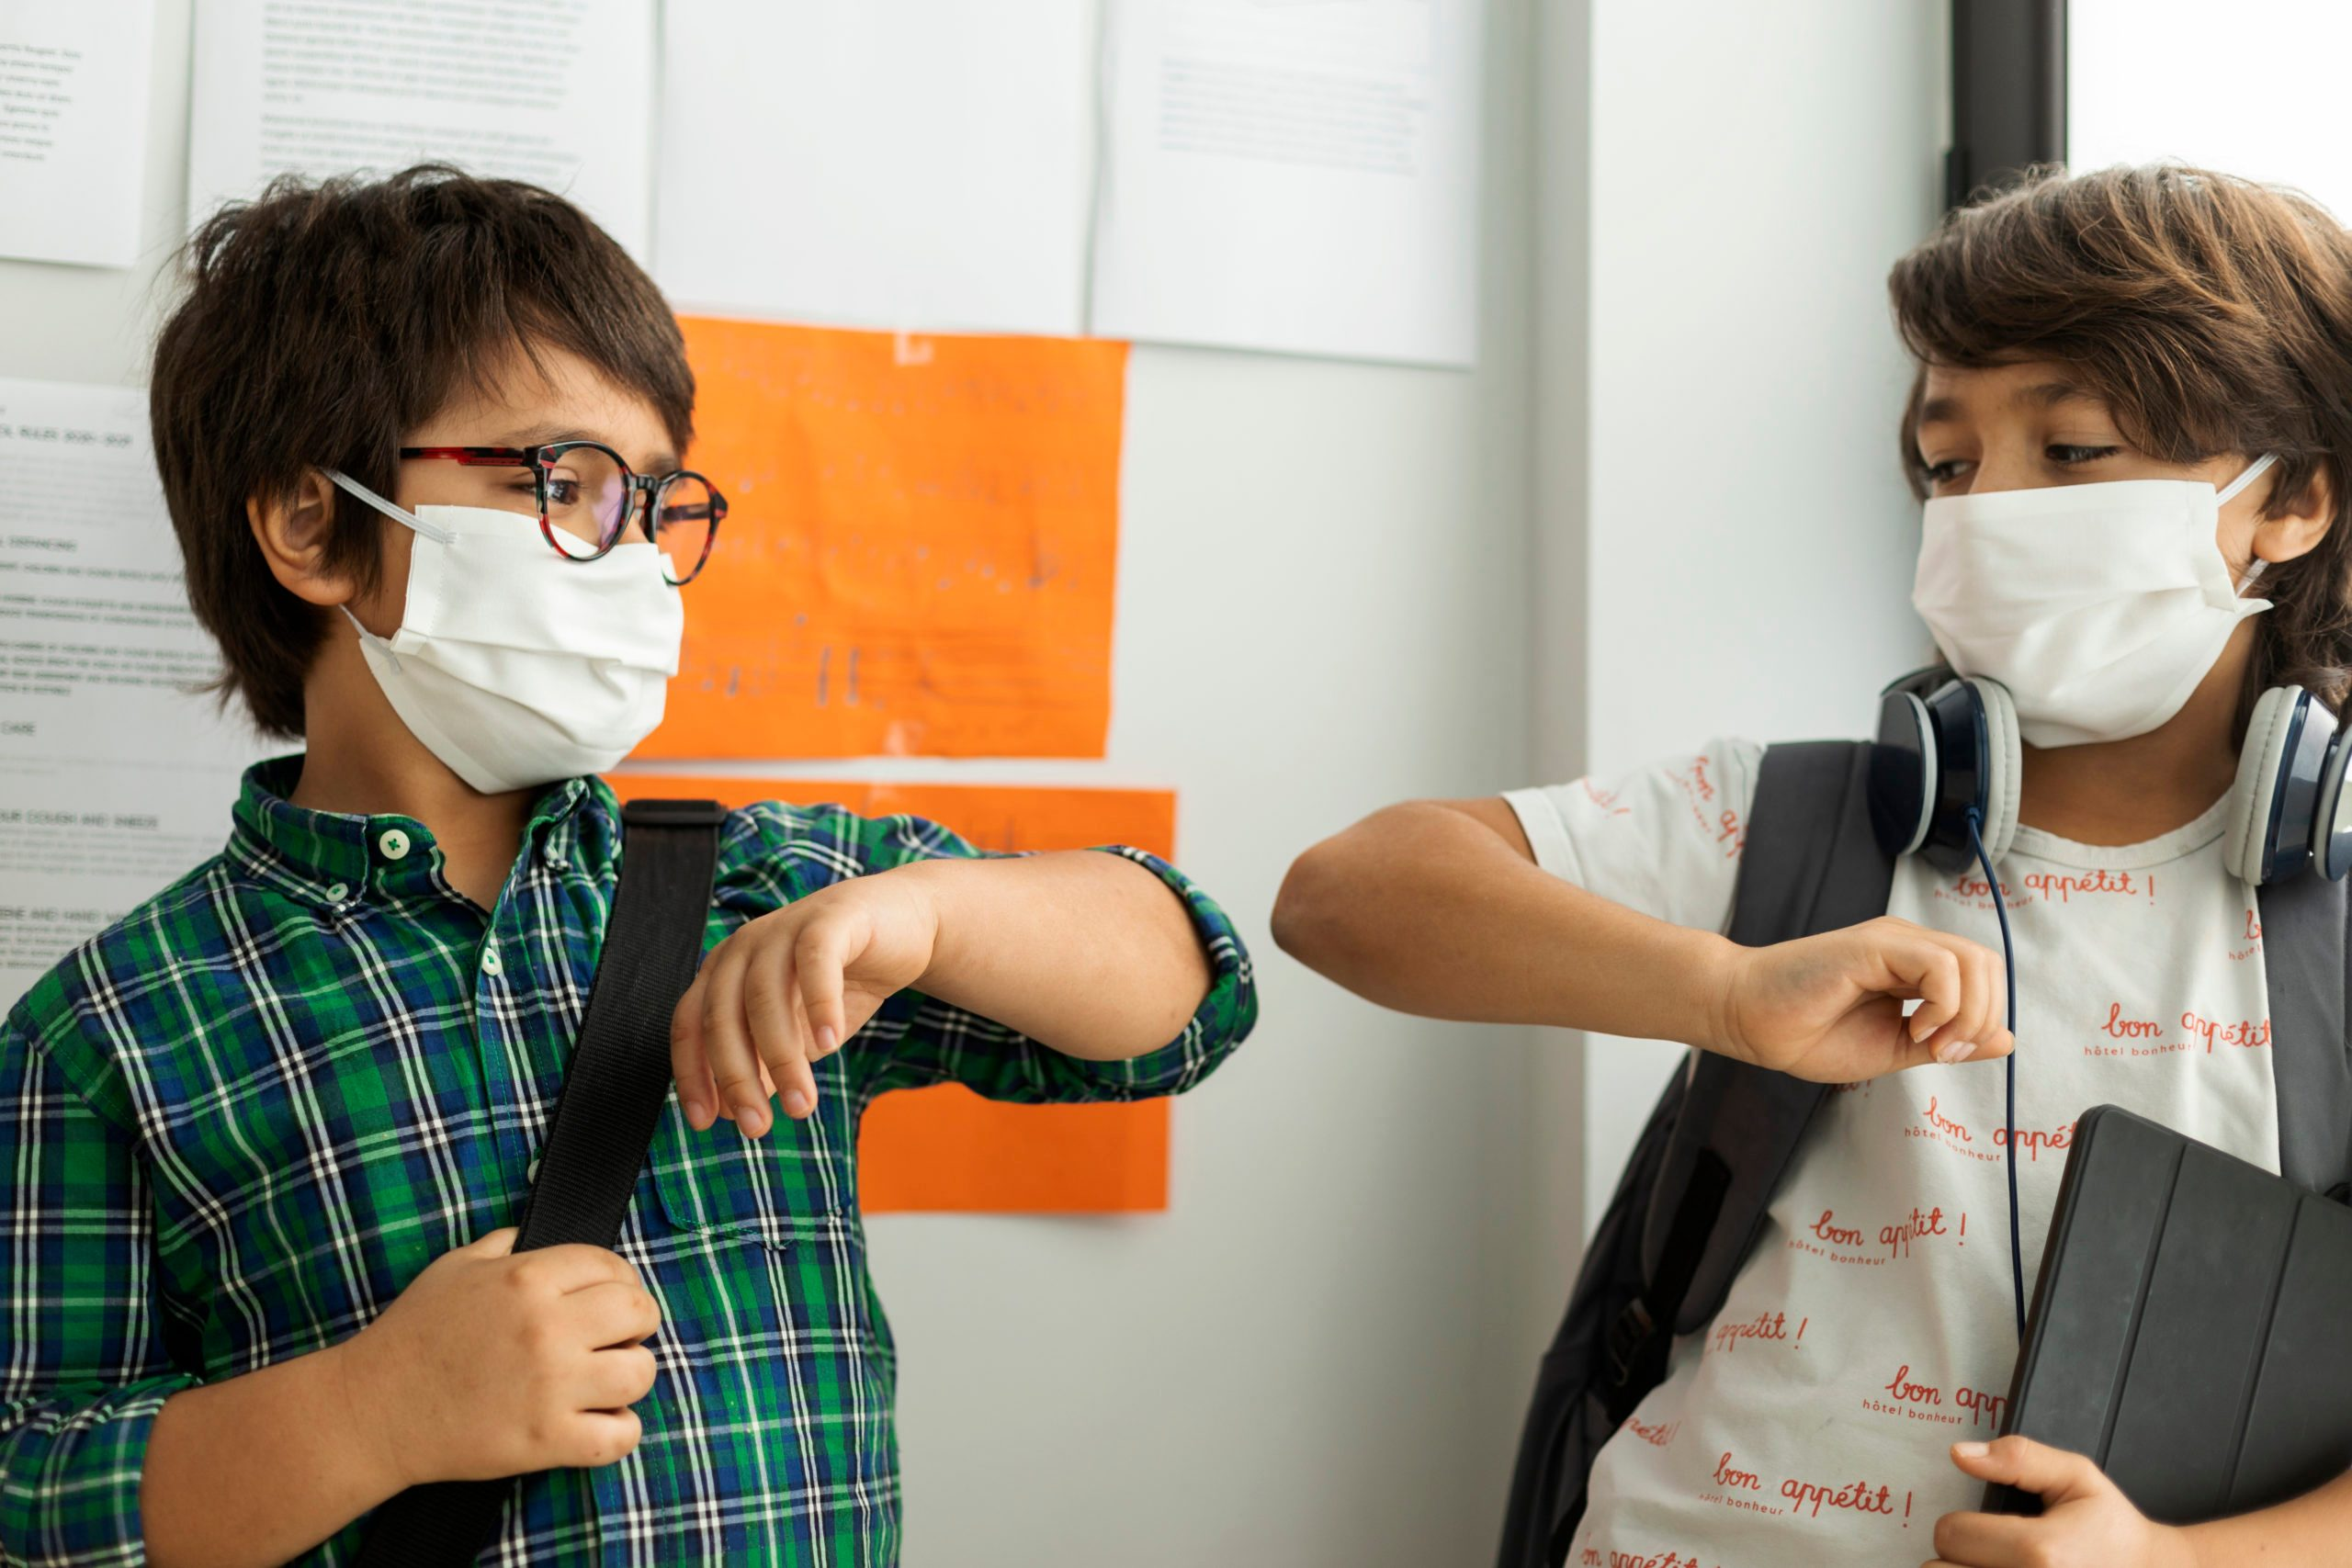 Boys wearing masks giving elbow bump while standing against wall in school